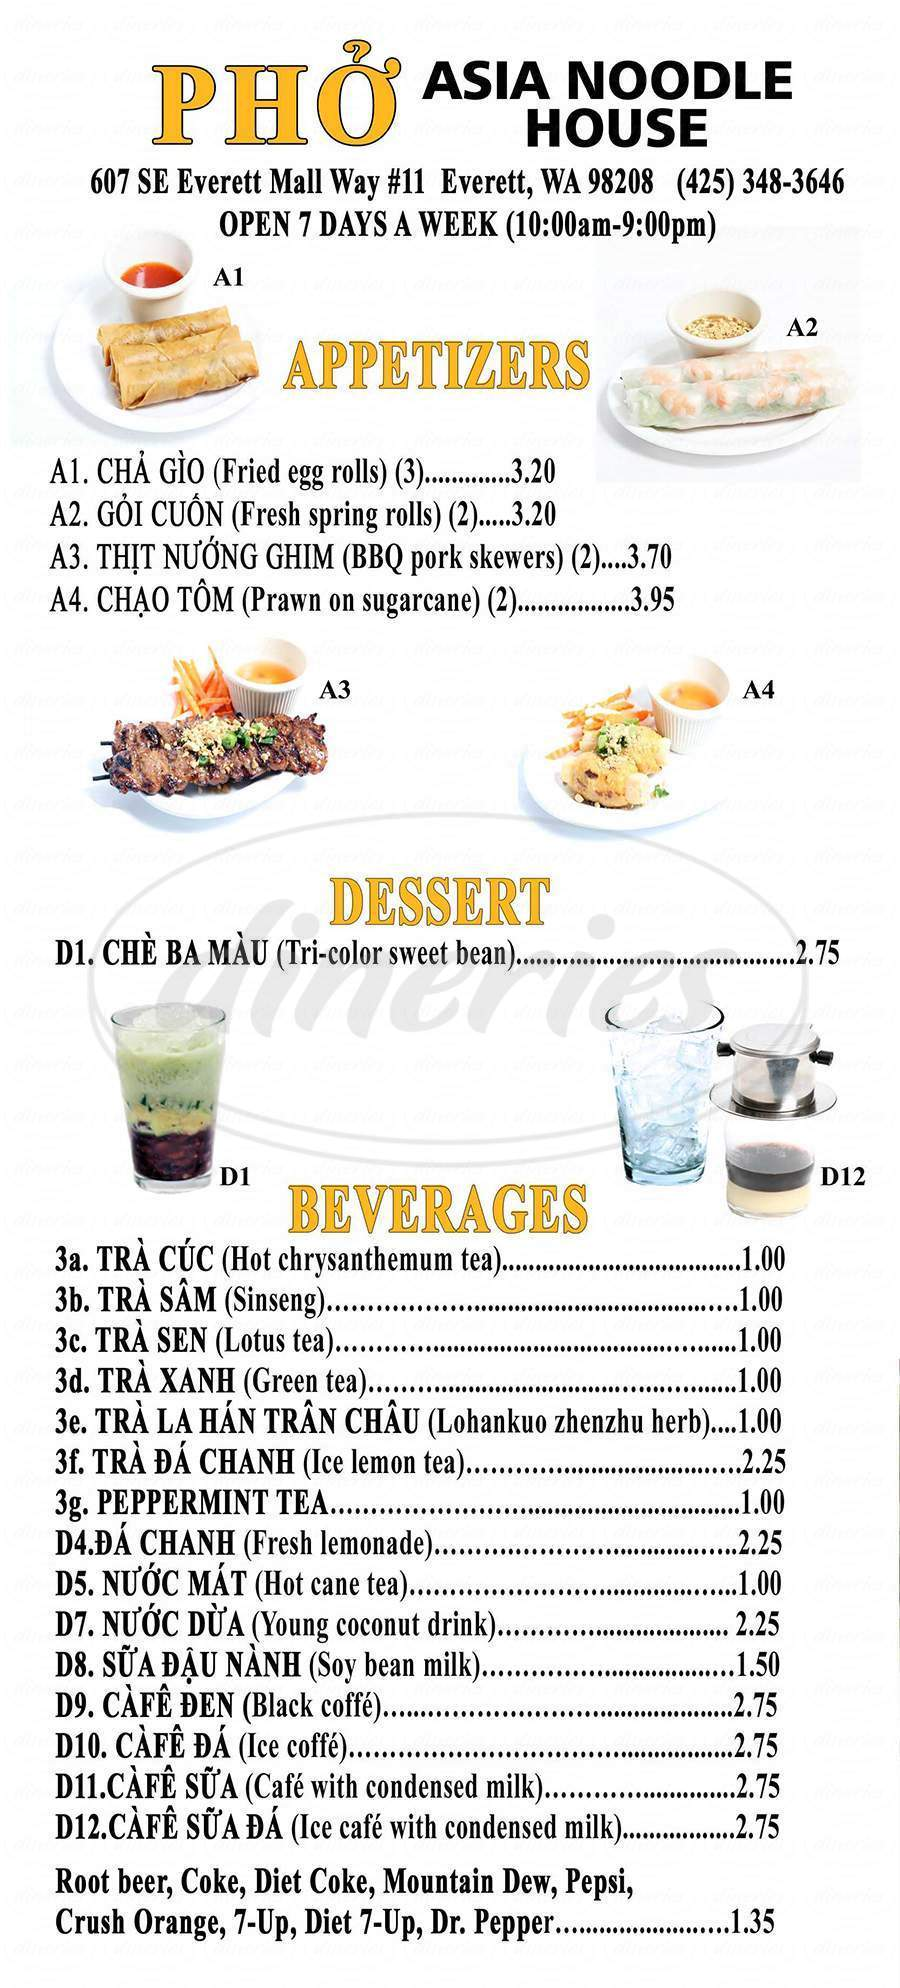 menu for Pho Asia Noodle House